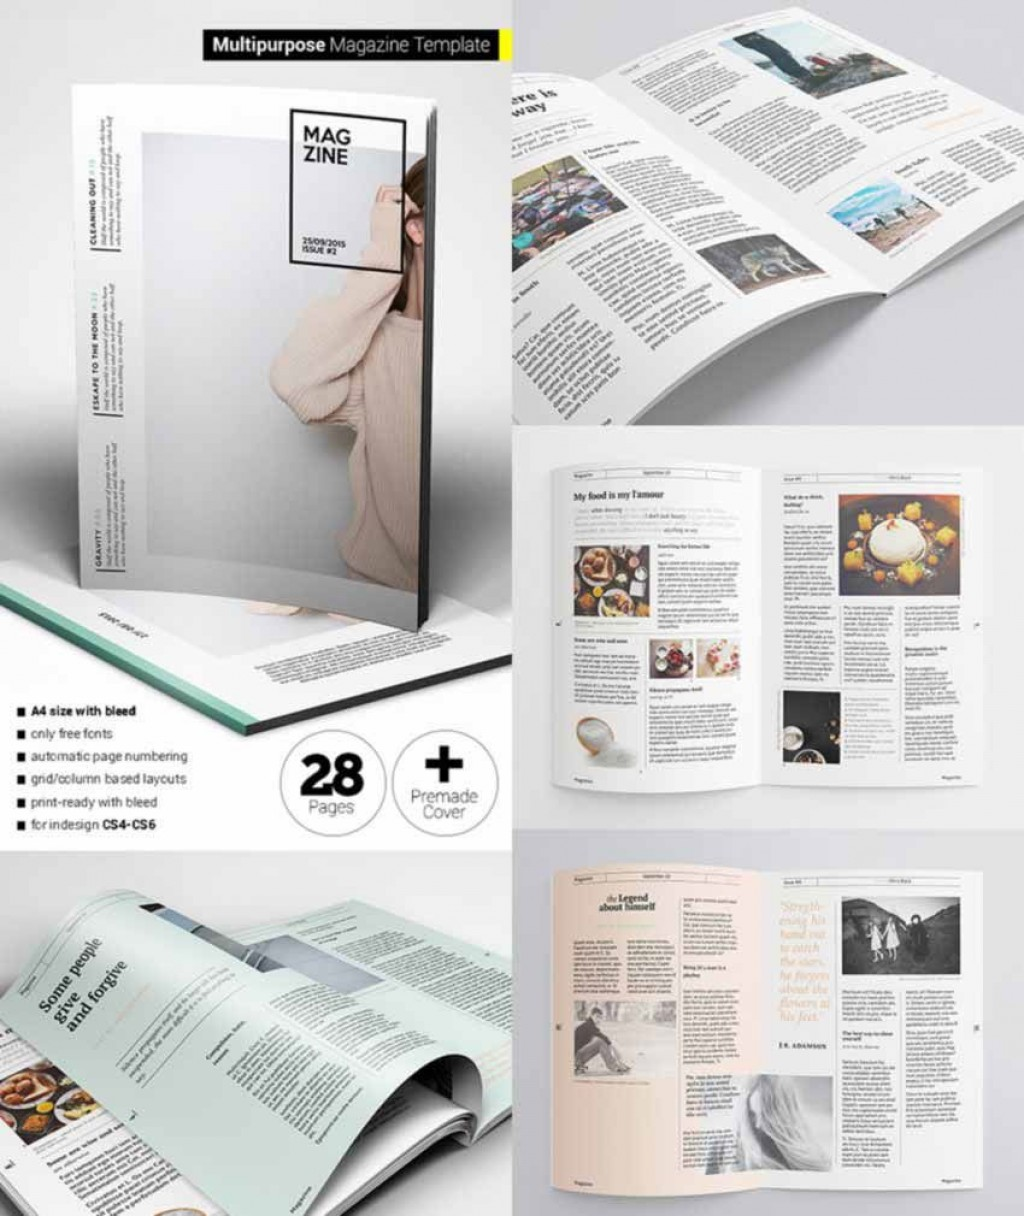 008 Imposing Free Magazine Article Layout Template For Word Idea Large